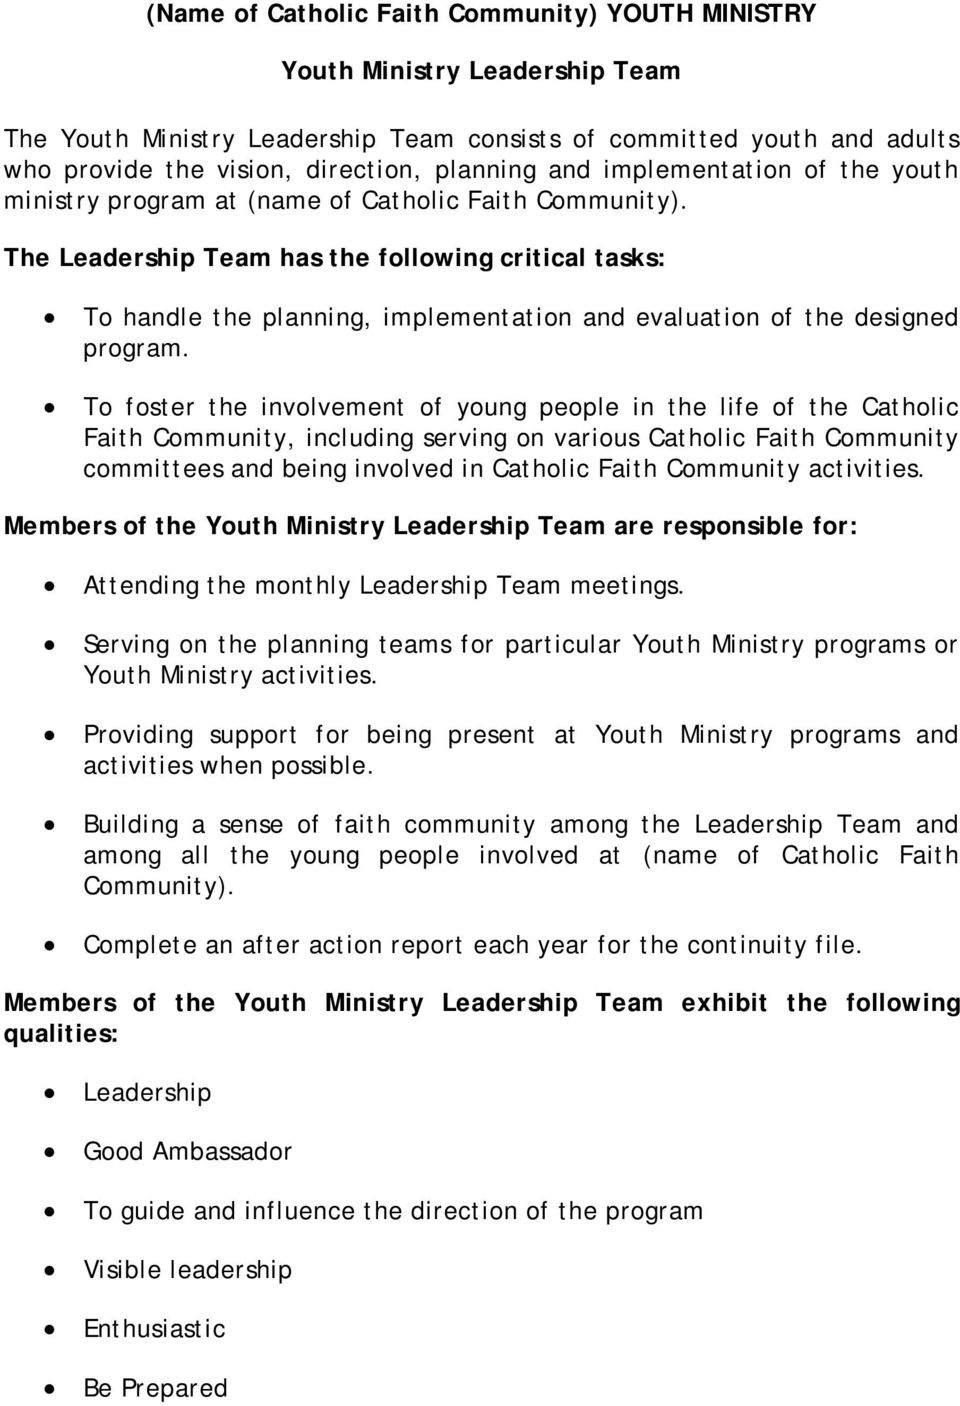 To foster the involvement of young people in the life of the Catholic Faith Community, including serving on various Catholic Faith Community committees and being involved in Catholic Faith Community